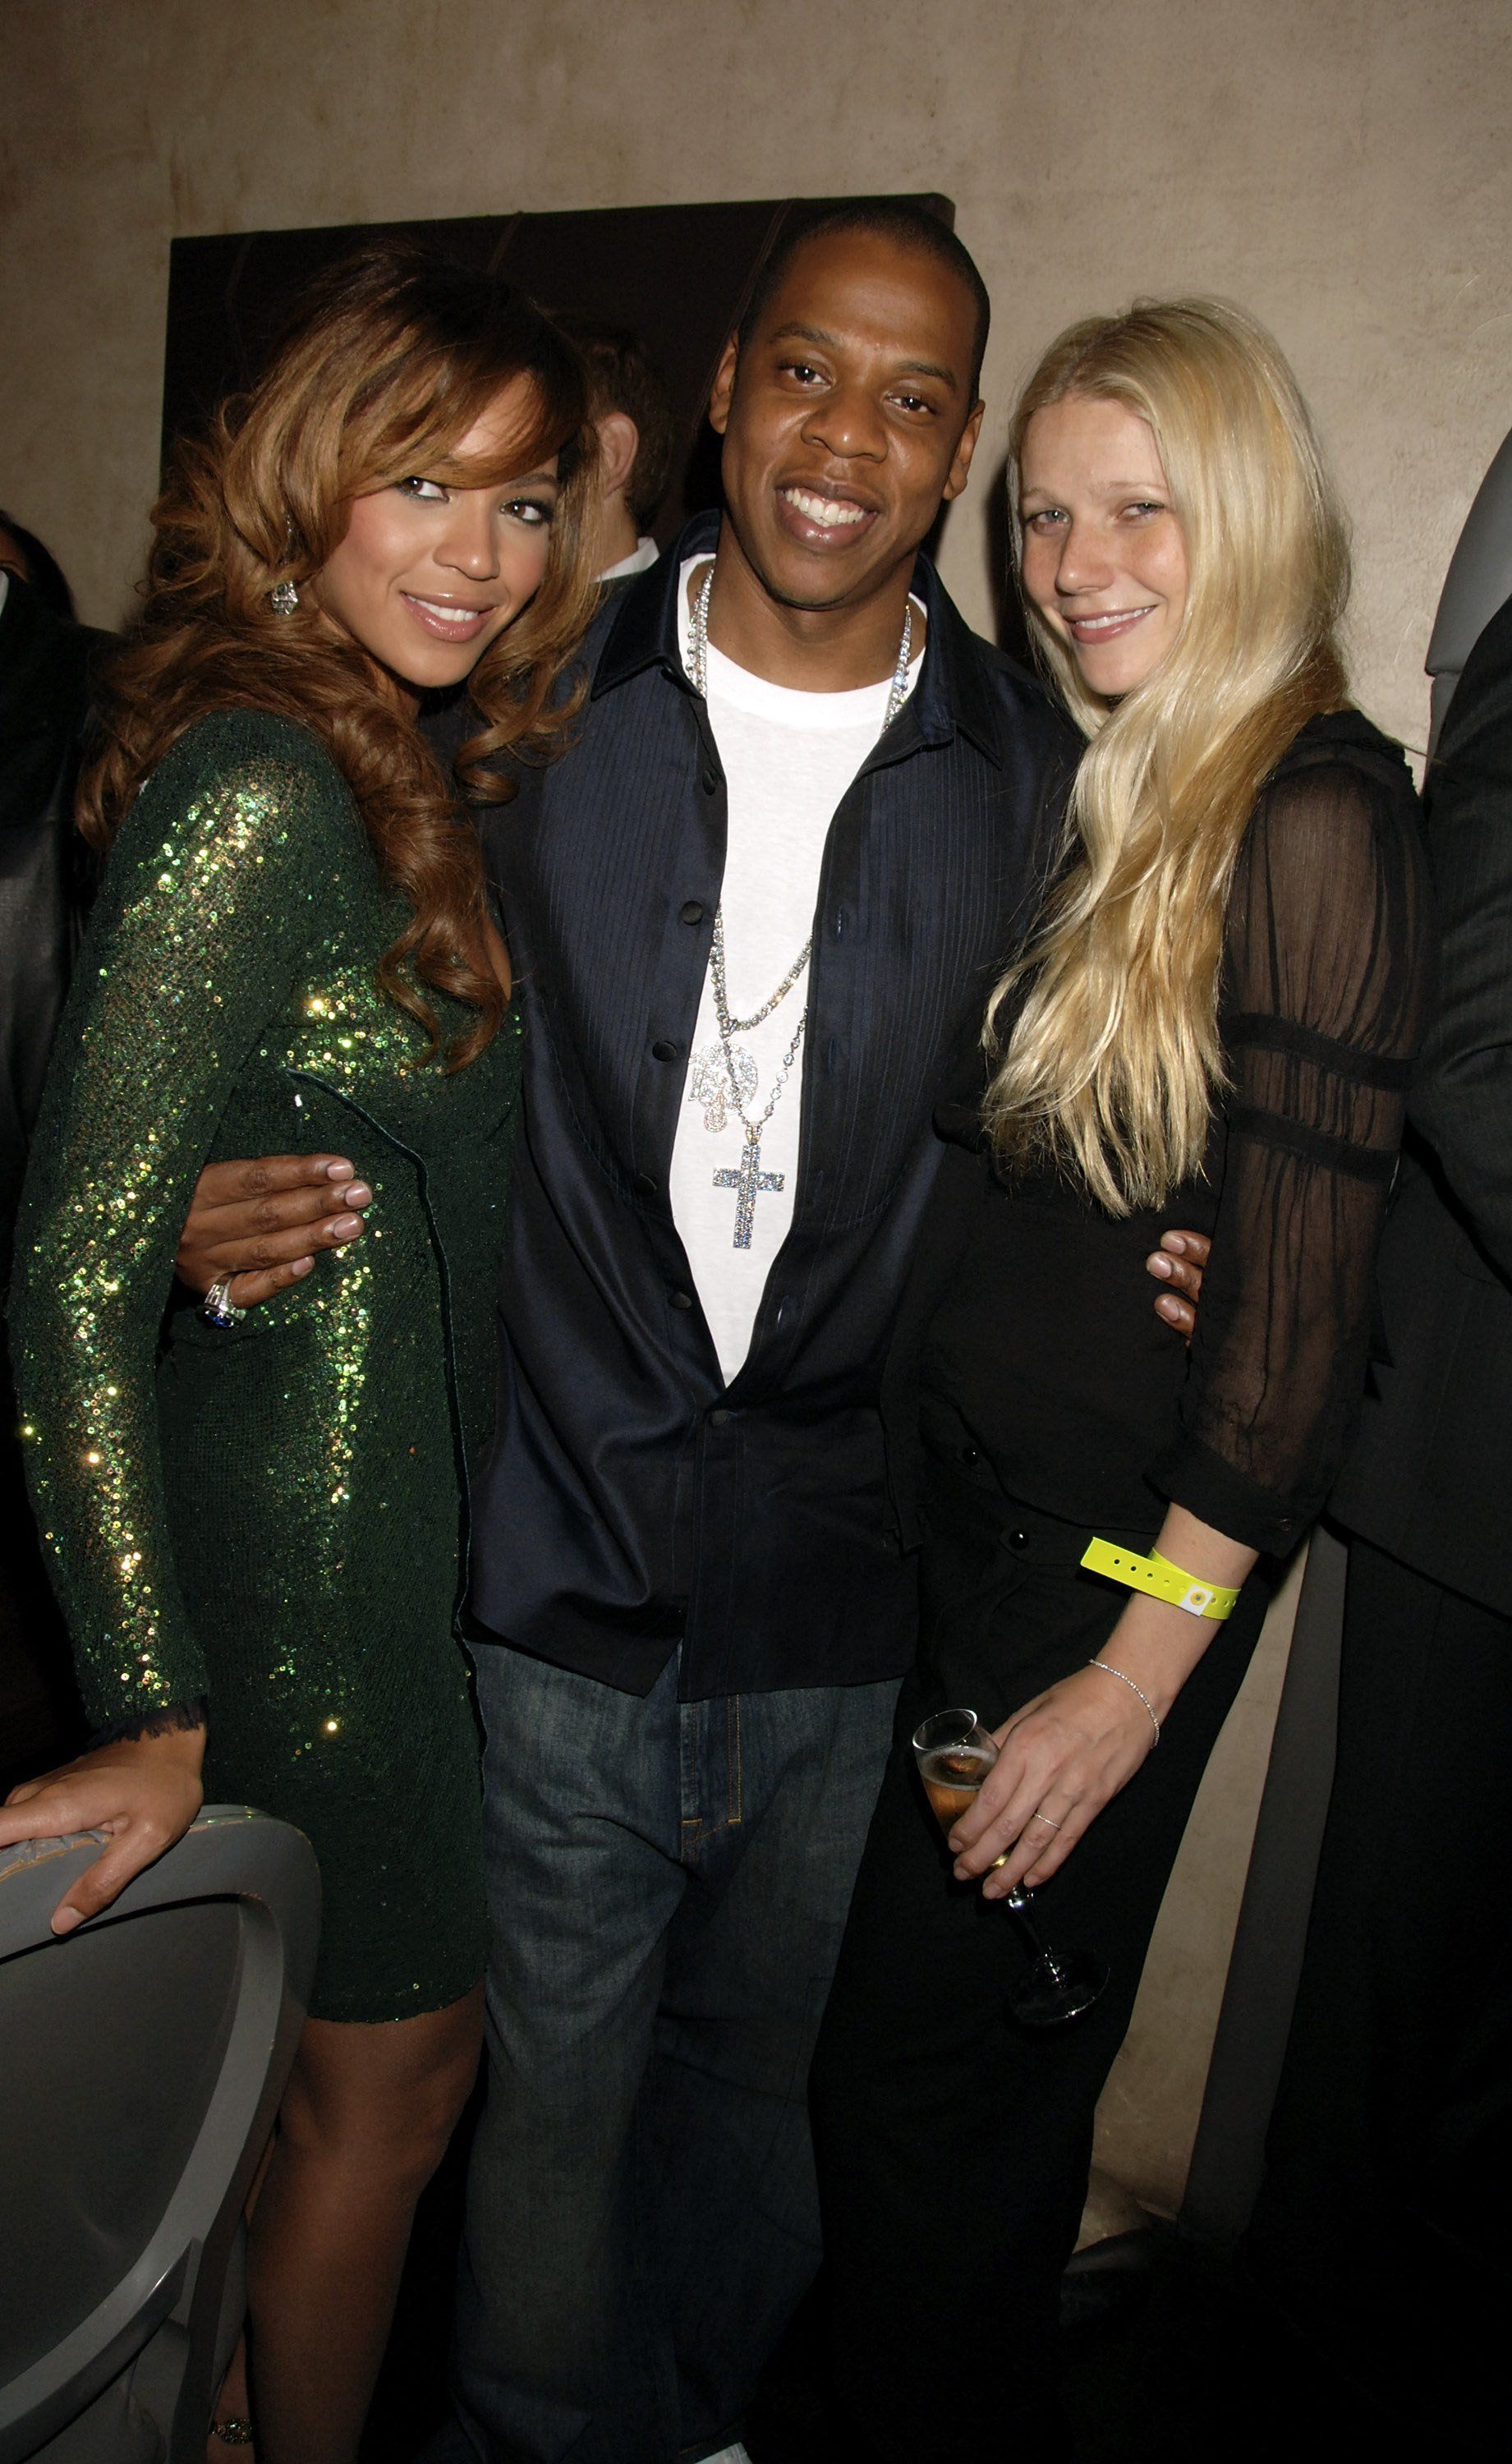 Beyonce, Jay-Z and actress Gwyneth Paltrow pictured together in